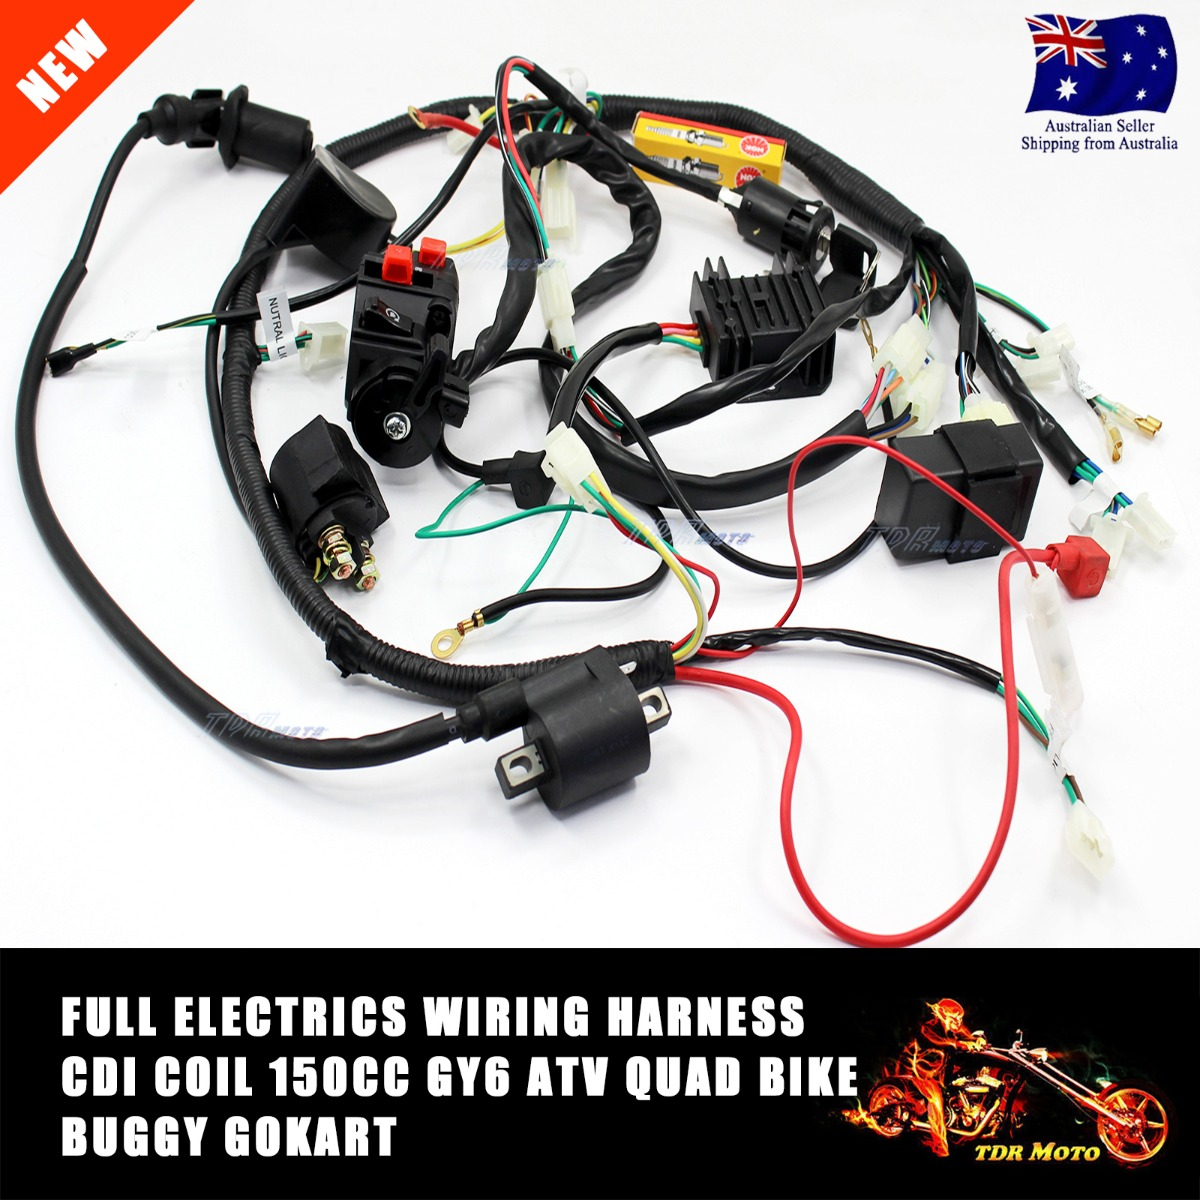 chinese gy6 150cc atv quad wire harness wiring assembly Wiring Harness for Golf Cart TD356 tdr  1